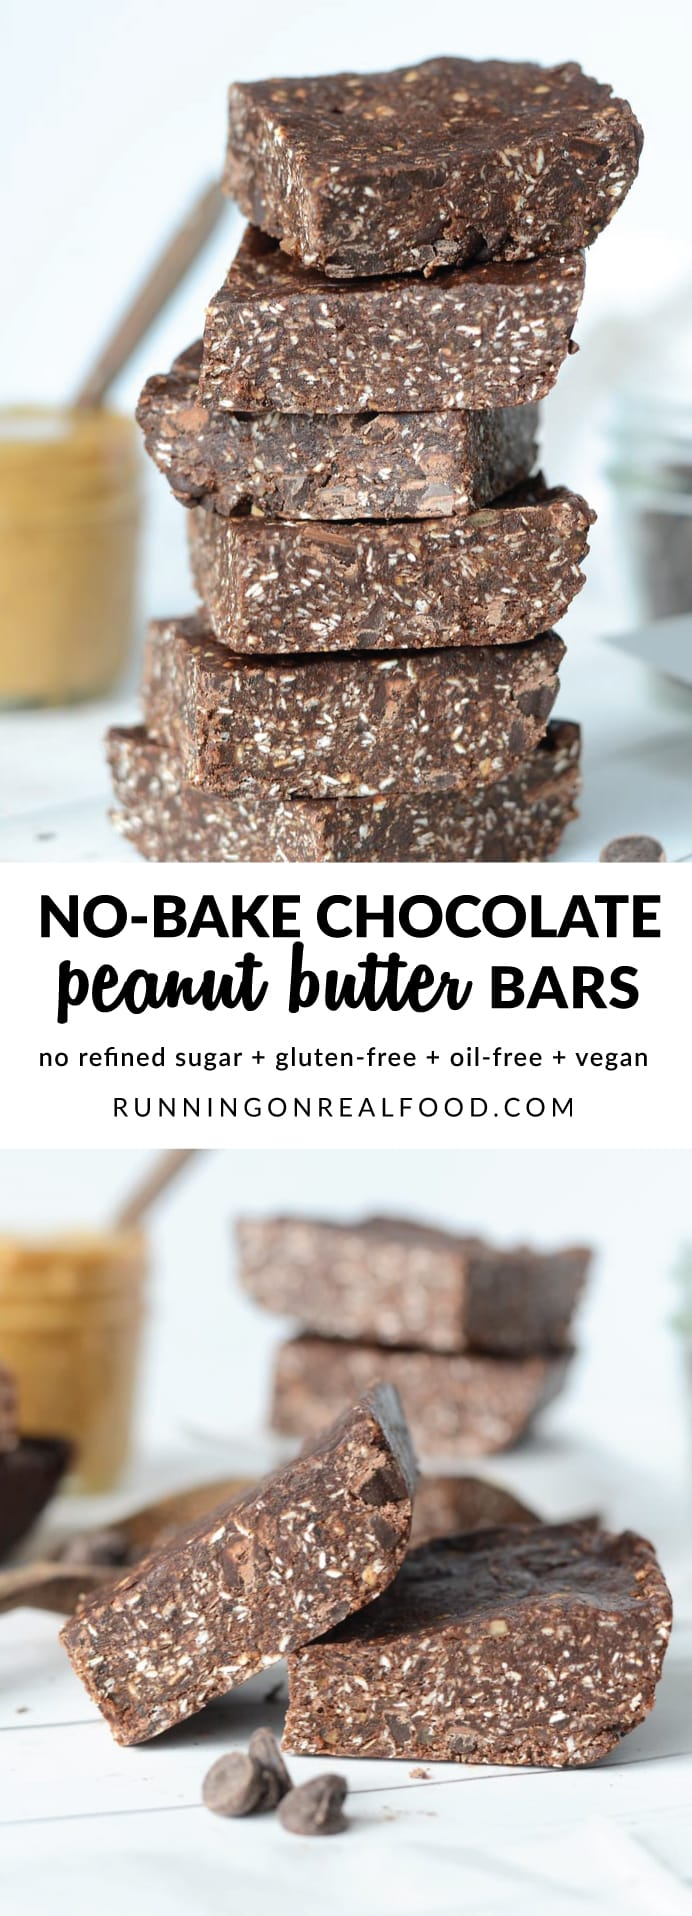 These delicious and addictive no-bake chocolate peanut butter bars are easy to make in minutes with just 6 basic ingredients. No refined sugar, vegan, oil-free and gluten-free.